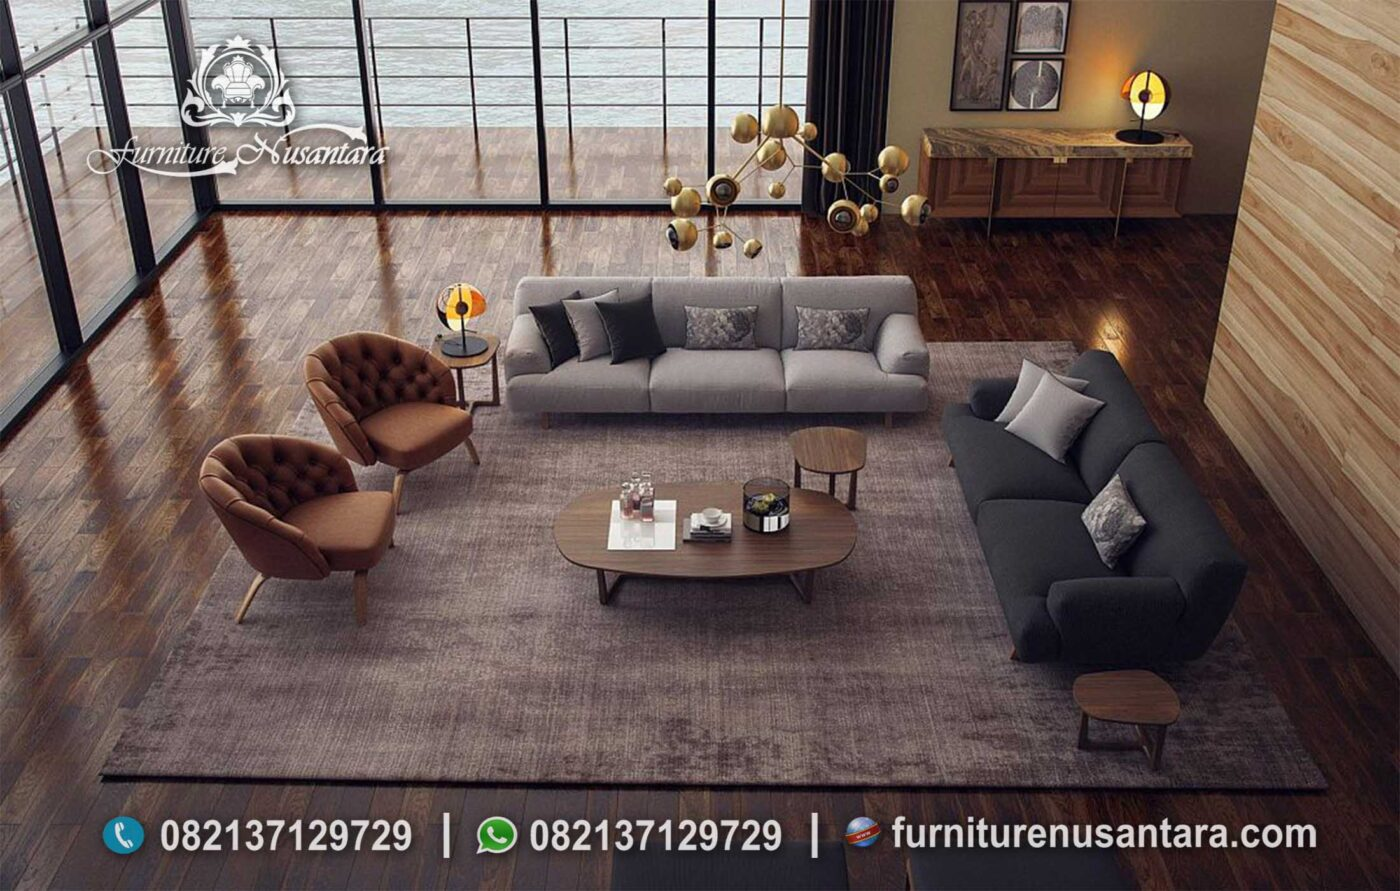 New Model Sofa Ruang Keluarga ST-78, Furniture Nusantara